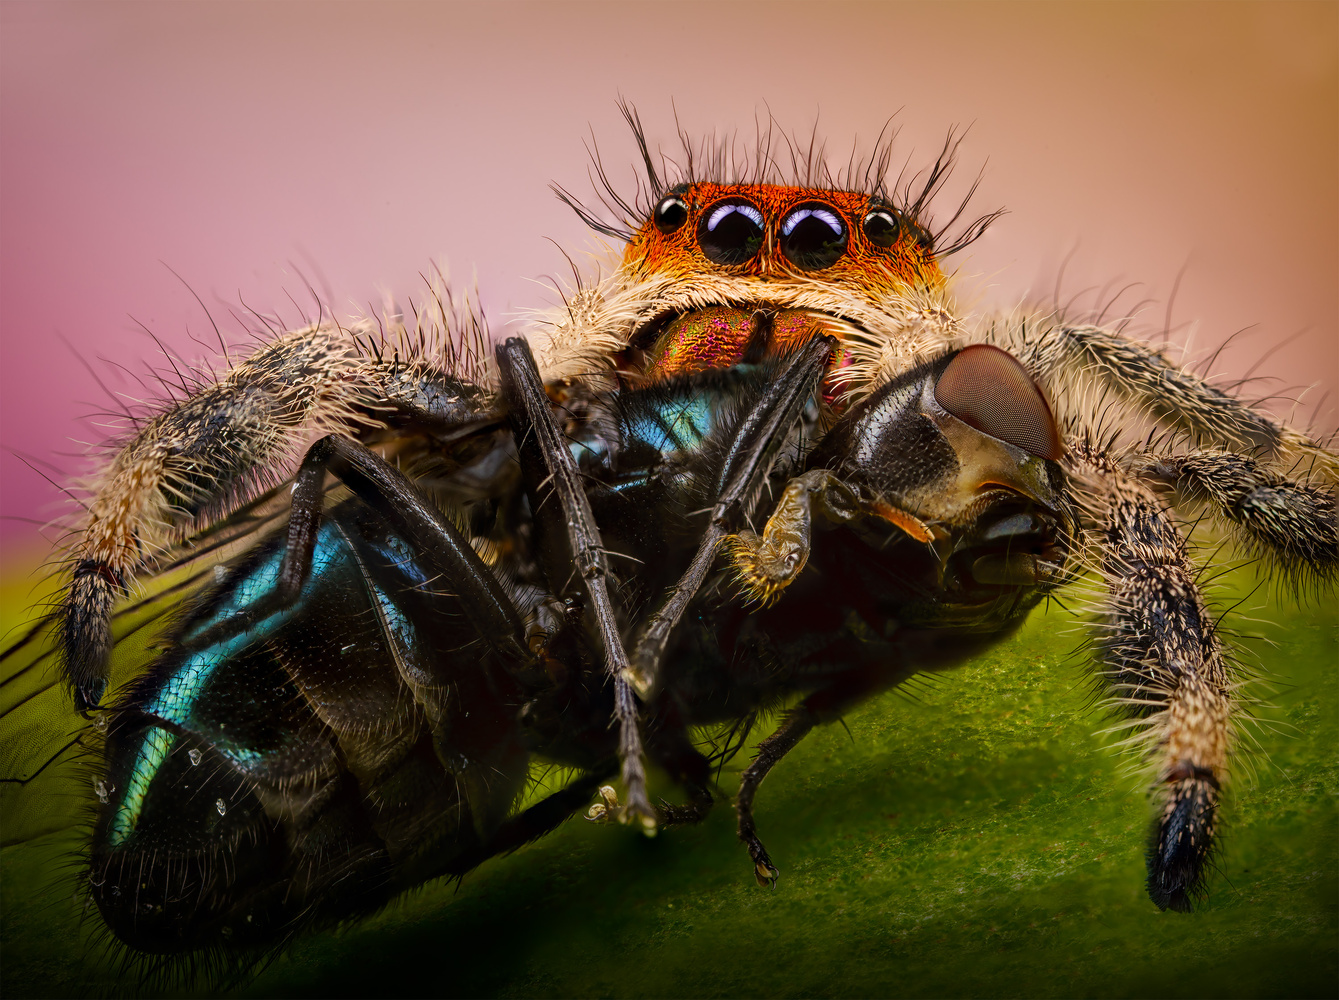 The Fiery Regal Jumping Spider by Liza Rock